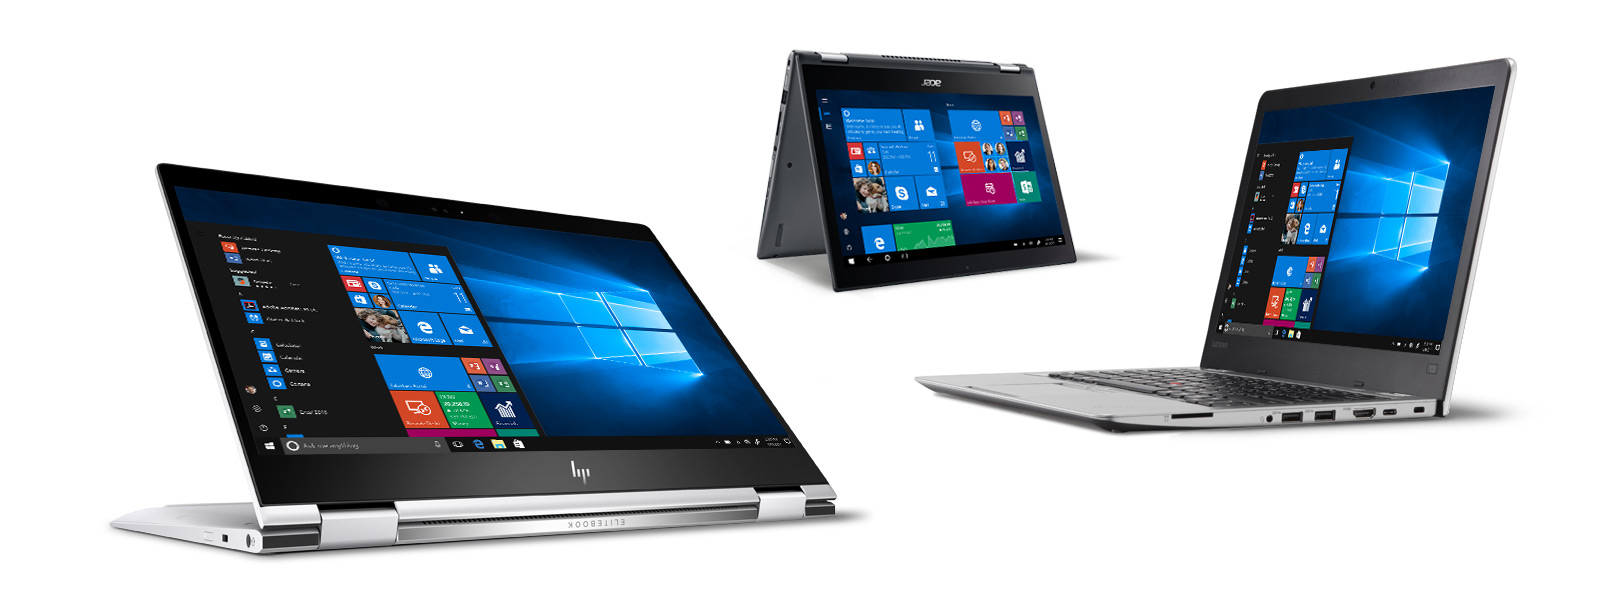 three laptop devices showcasing Windows 10